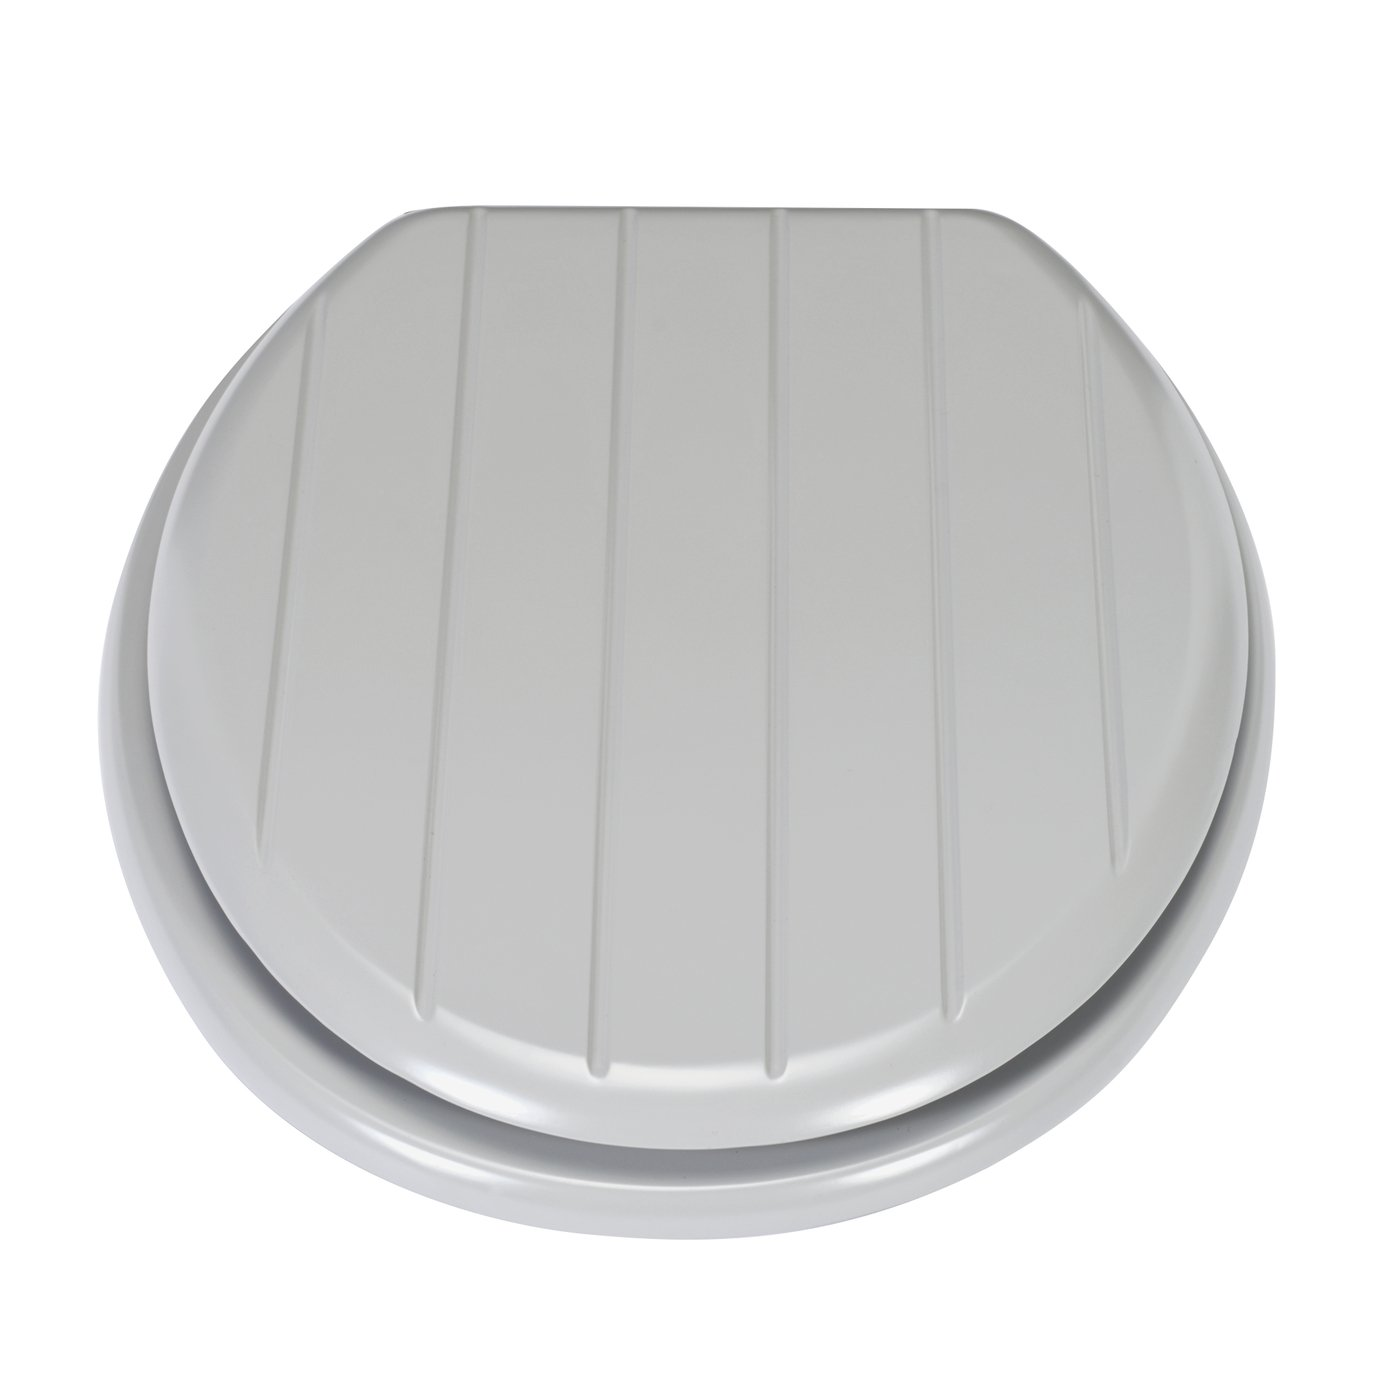 Argos Home Shaker Style Moulded Wood Toilet Seat - Grey